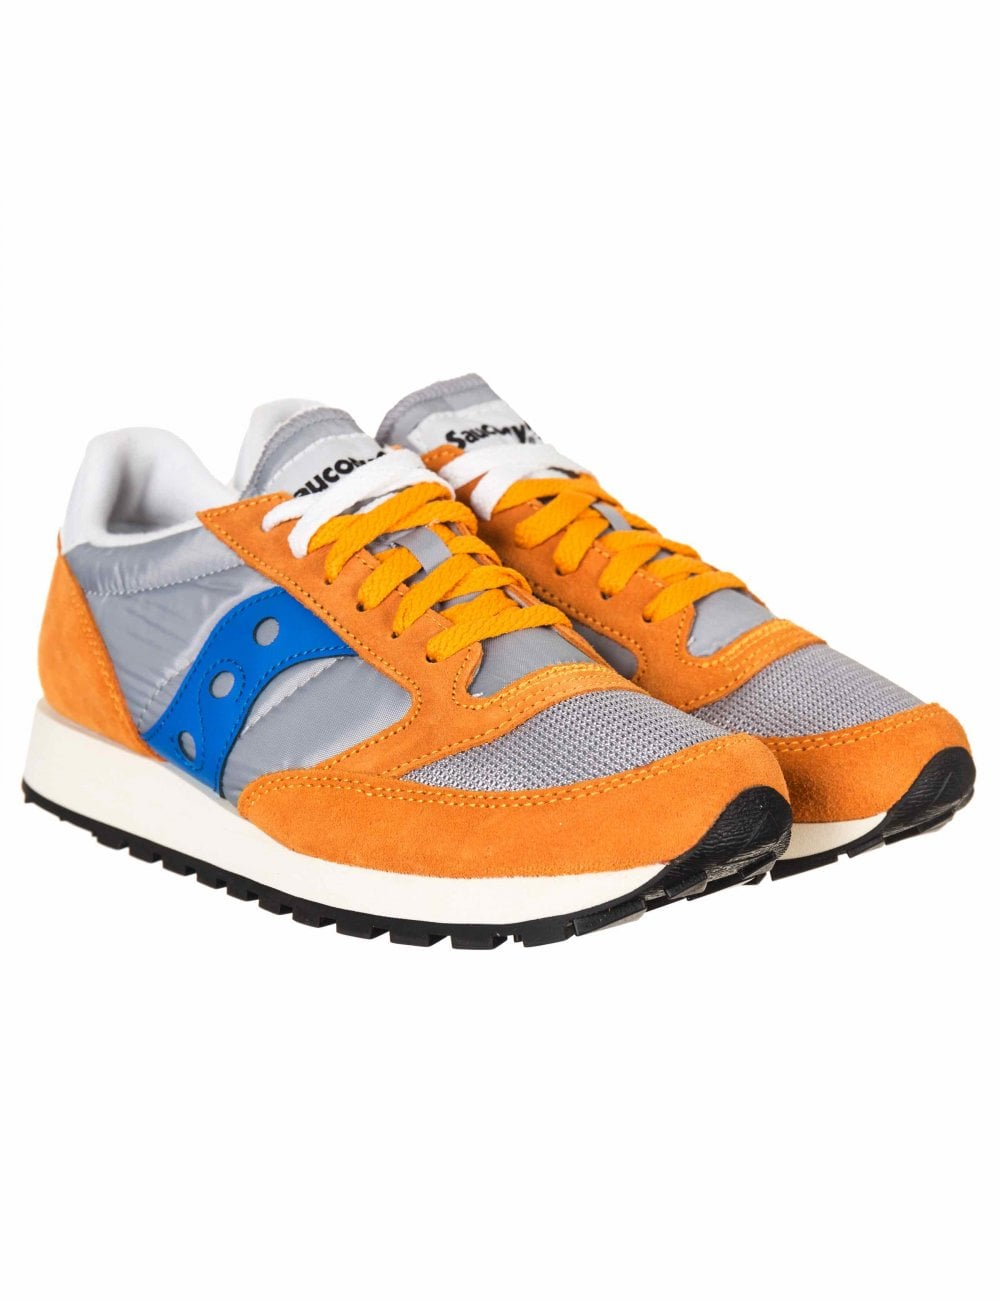 detailed look 25819 8cad7 Jazz Vintage OG Trainers - Orange/Grey/Blue